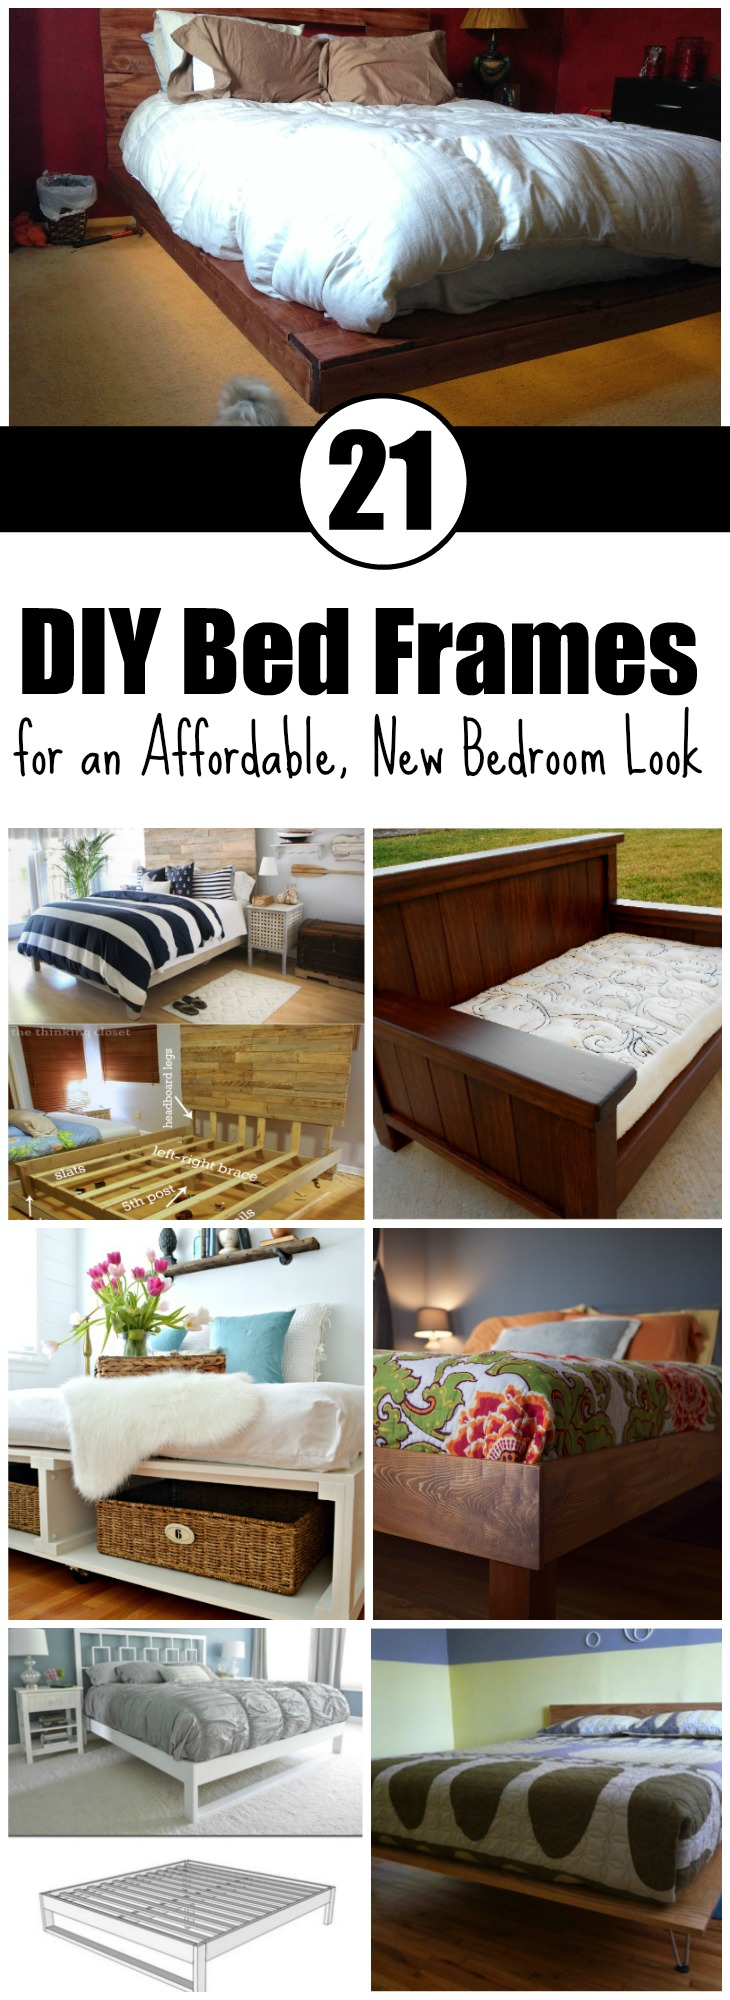 DIY Bed Frames for an Affordable New Bedroom Look